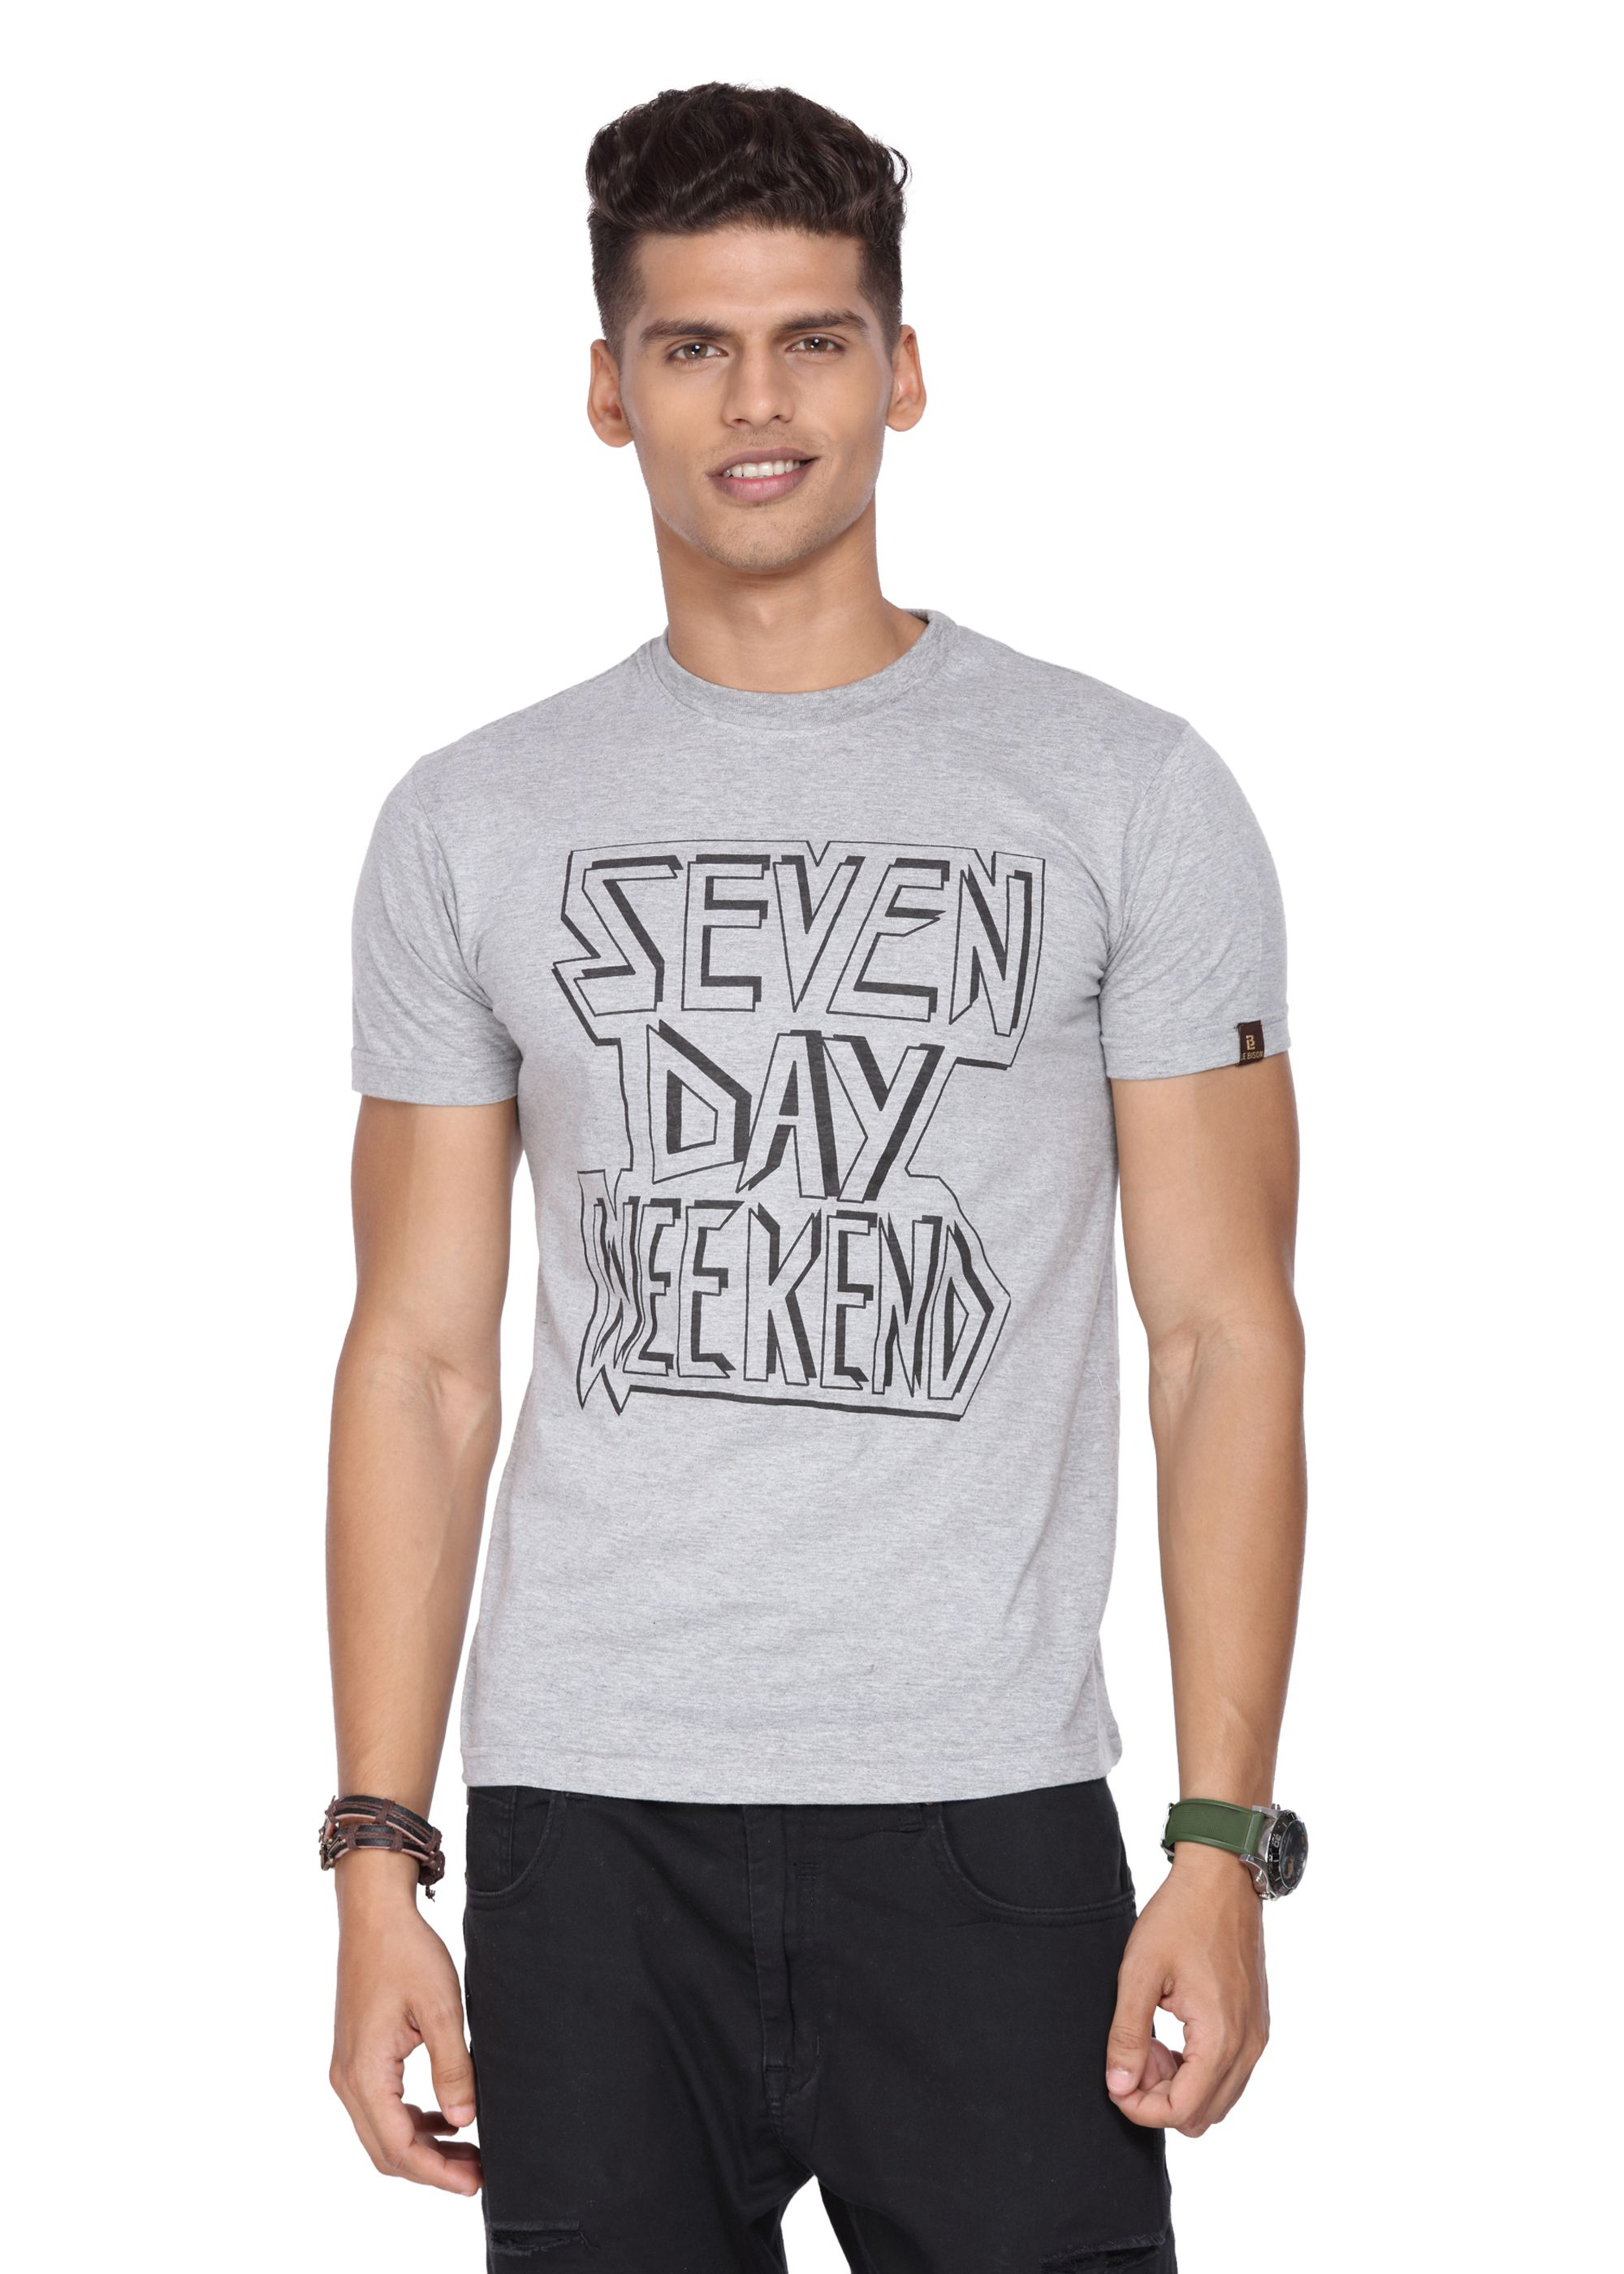 Le Bison Grey Round T-Shirt Pack of 1